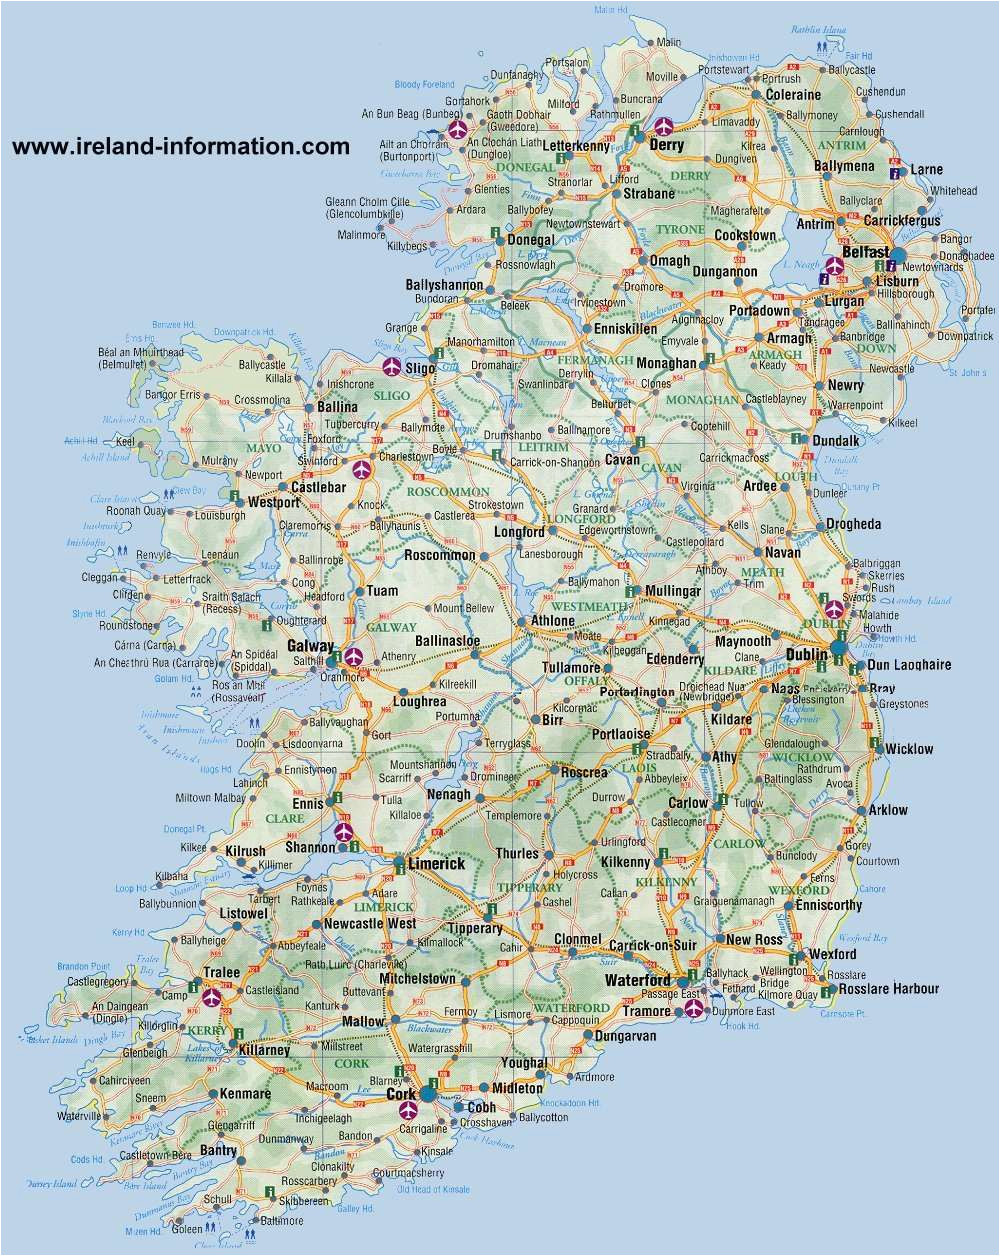 most popular tourist attractions in ireland free paid attractions